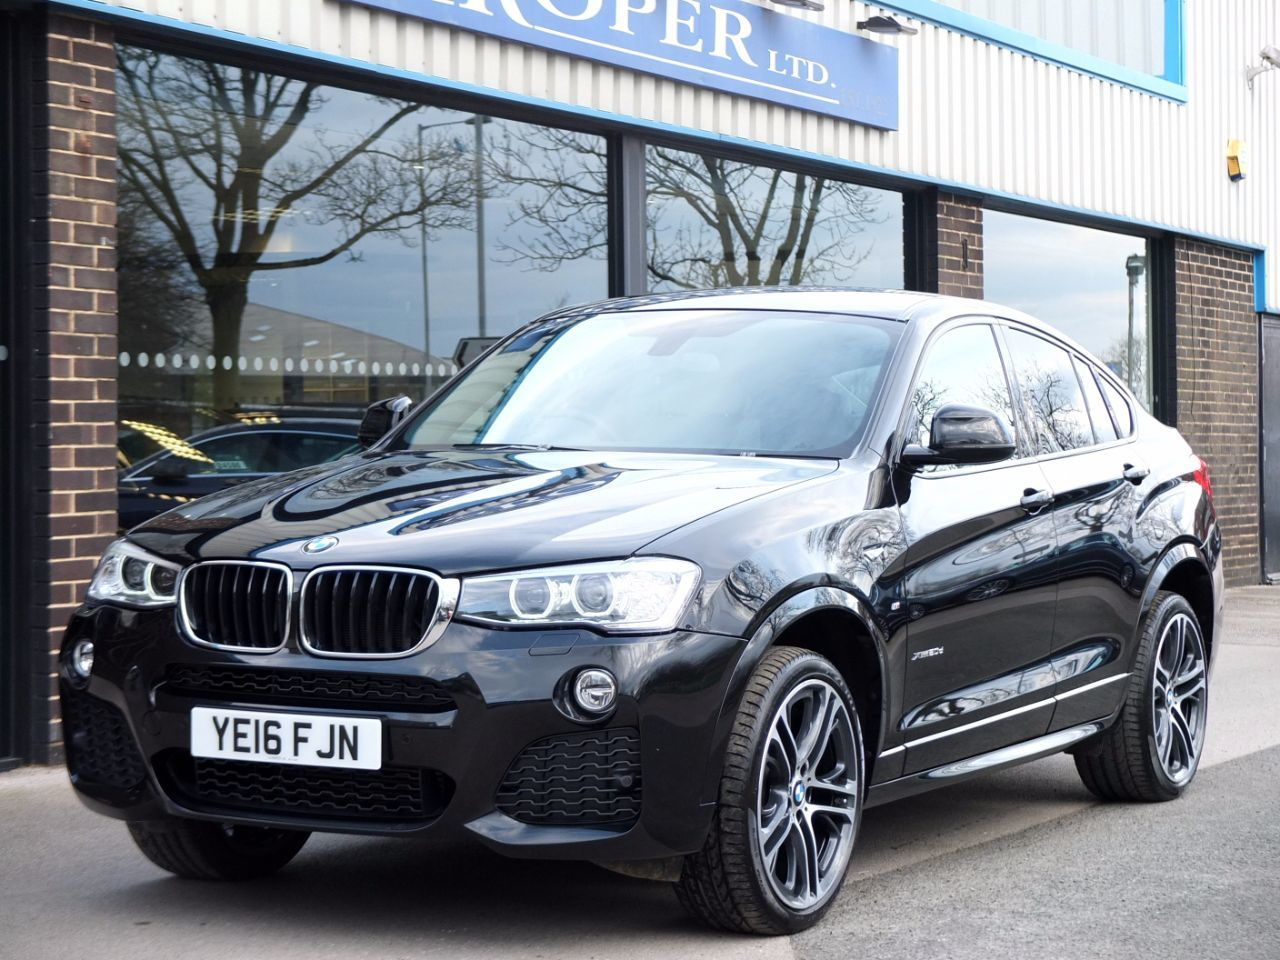 BMW X4 2.0 xDrive20d M Sport Plus Pack Auto Coupe Diesel Black Sapphire Metallic